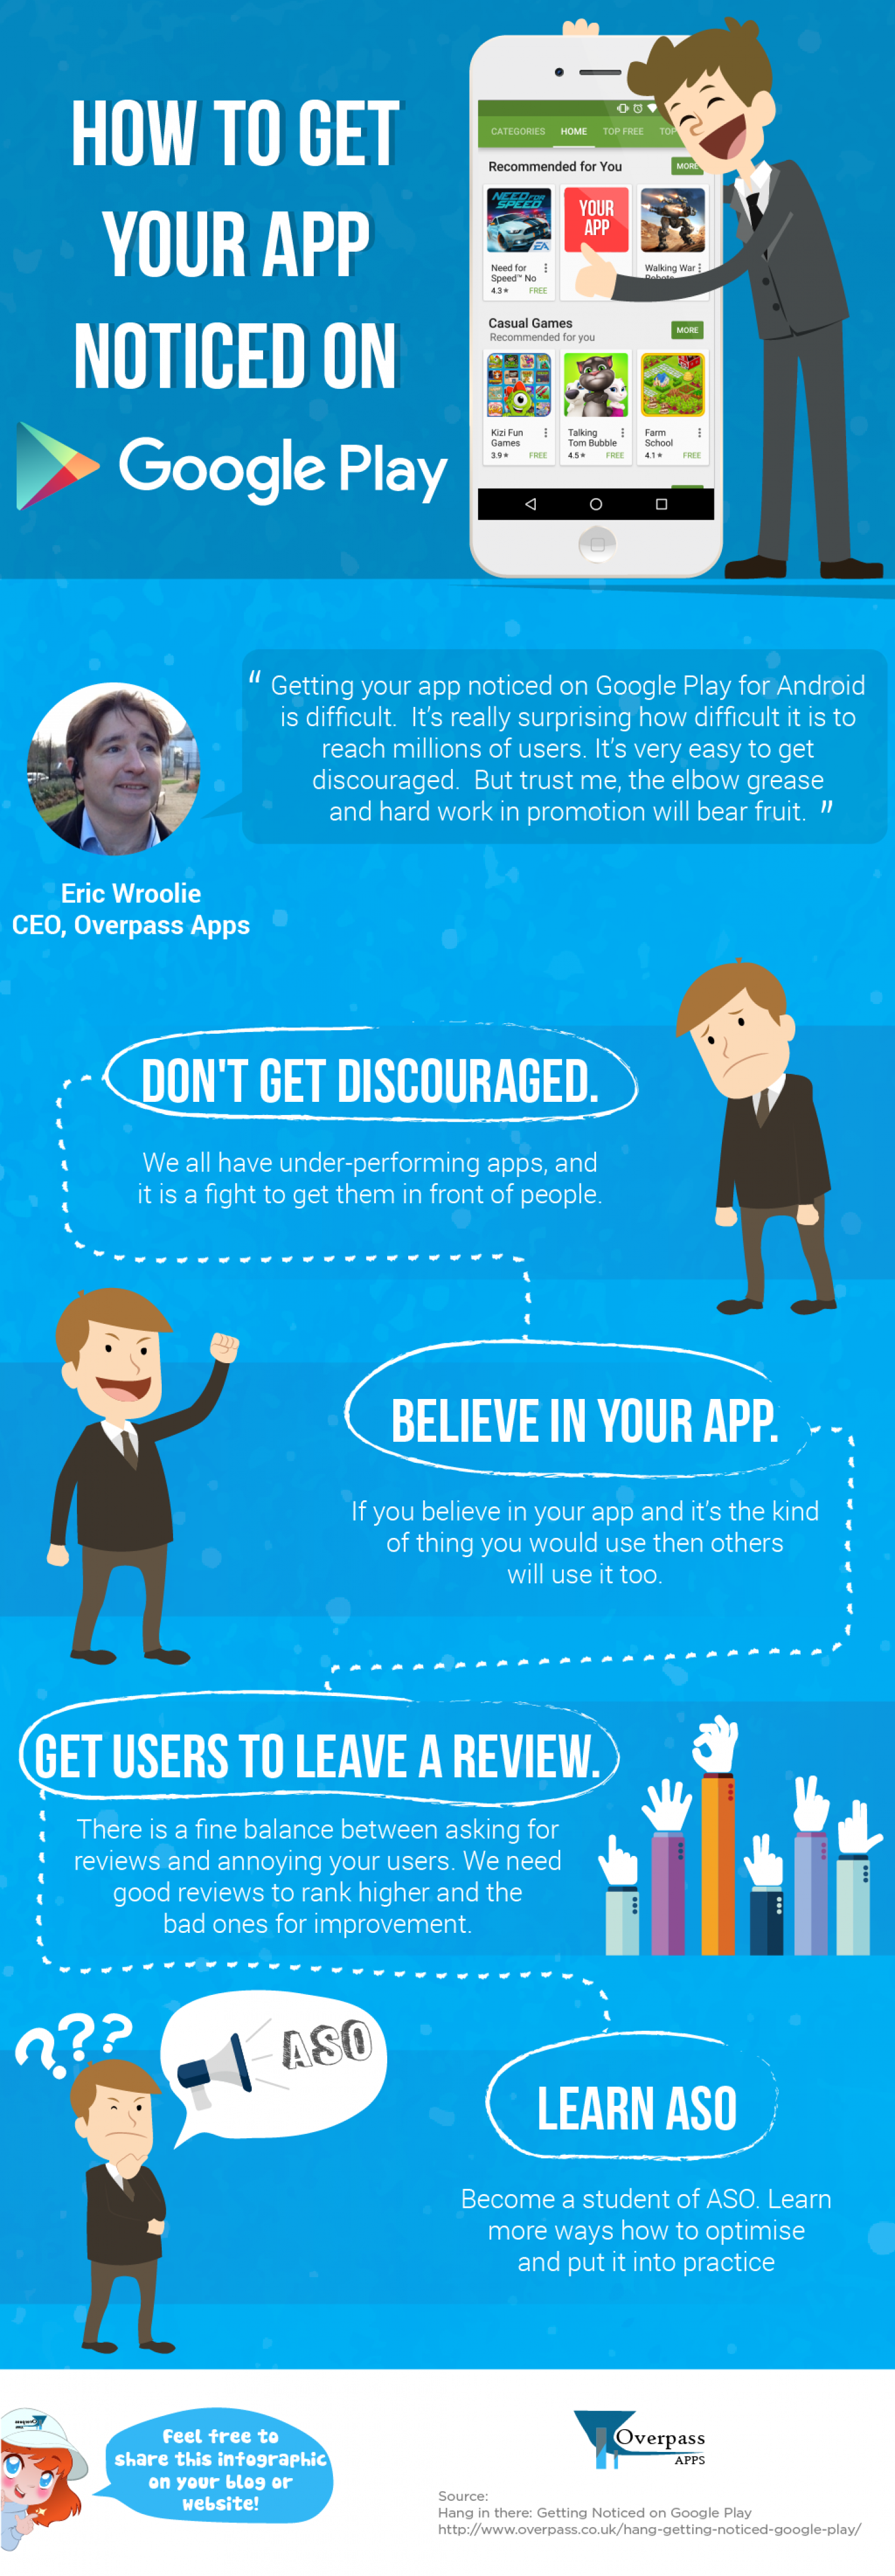 How to Get Your App Noticed On Google Play Infographic